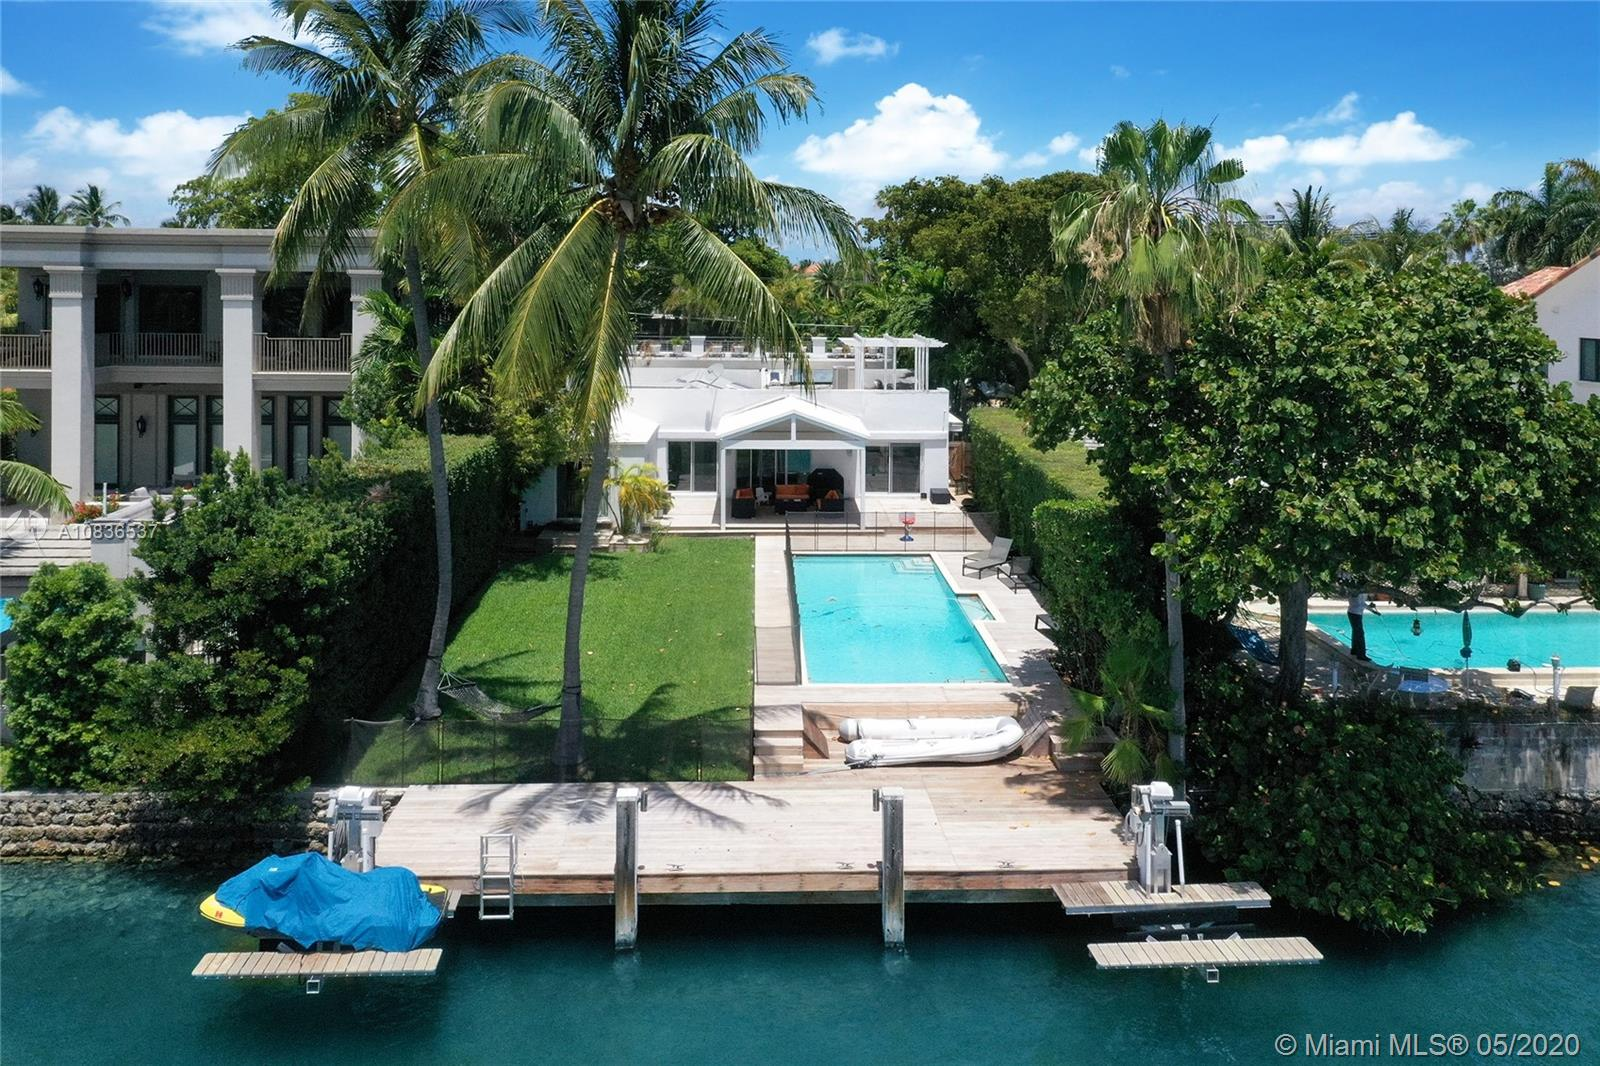 The least expensive waterfront property on exclusive gated Hibiscus Island in South Beach, minutes from World famous Ocean Drive, Downtown Miami and Brickell. Make it your home or tear it down and build another luxurious Palace on the Island! One of the last waterfront homes or site available at close to land value. The Island also includes tennis courts for outdoor sports. The private dock for your boat and jet ski lifts overlook the peaceful wide canal. Property has direct access to the Intracoastal Waterways and the Ocean. Great floor plan: a separate wing at entrance leads to 2 bed/2 baths. Den/office enjoys the entire living area. 2 master suites open to the pool deck & overlook the  Palaces of Palm Island across the sparkling blue waters. Enjoy South exposure and Downtown views !